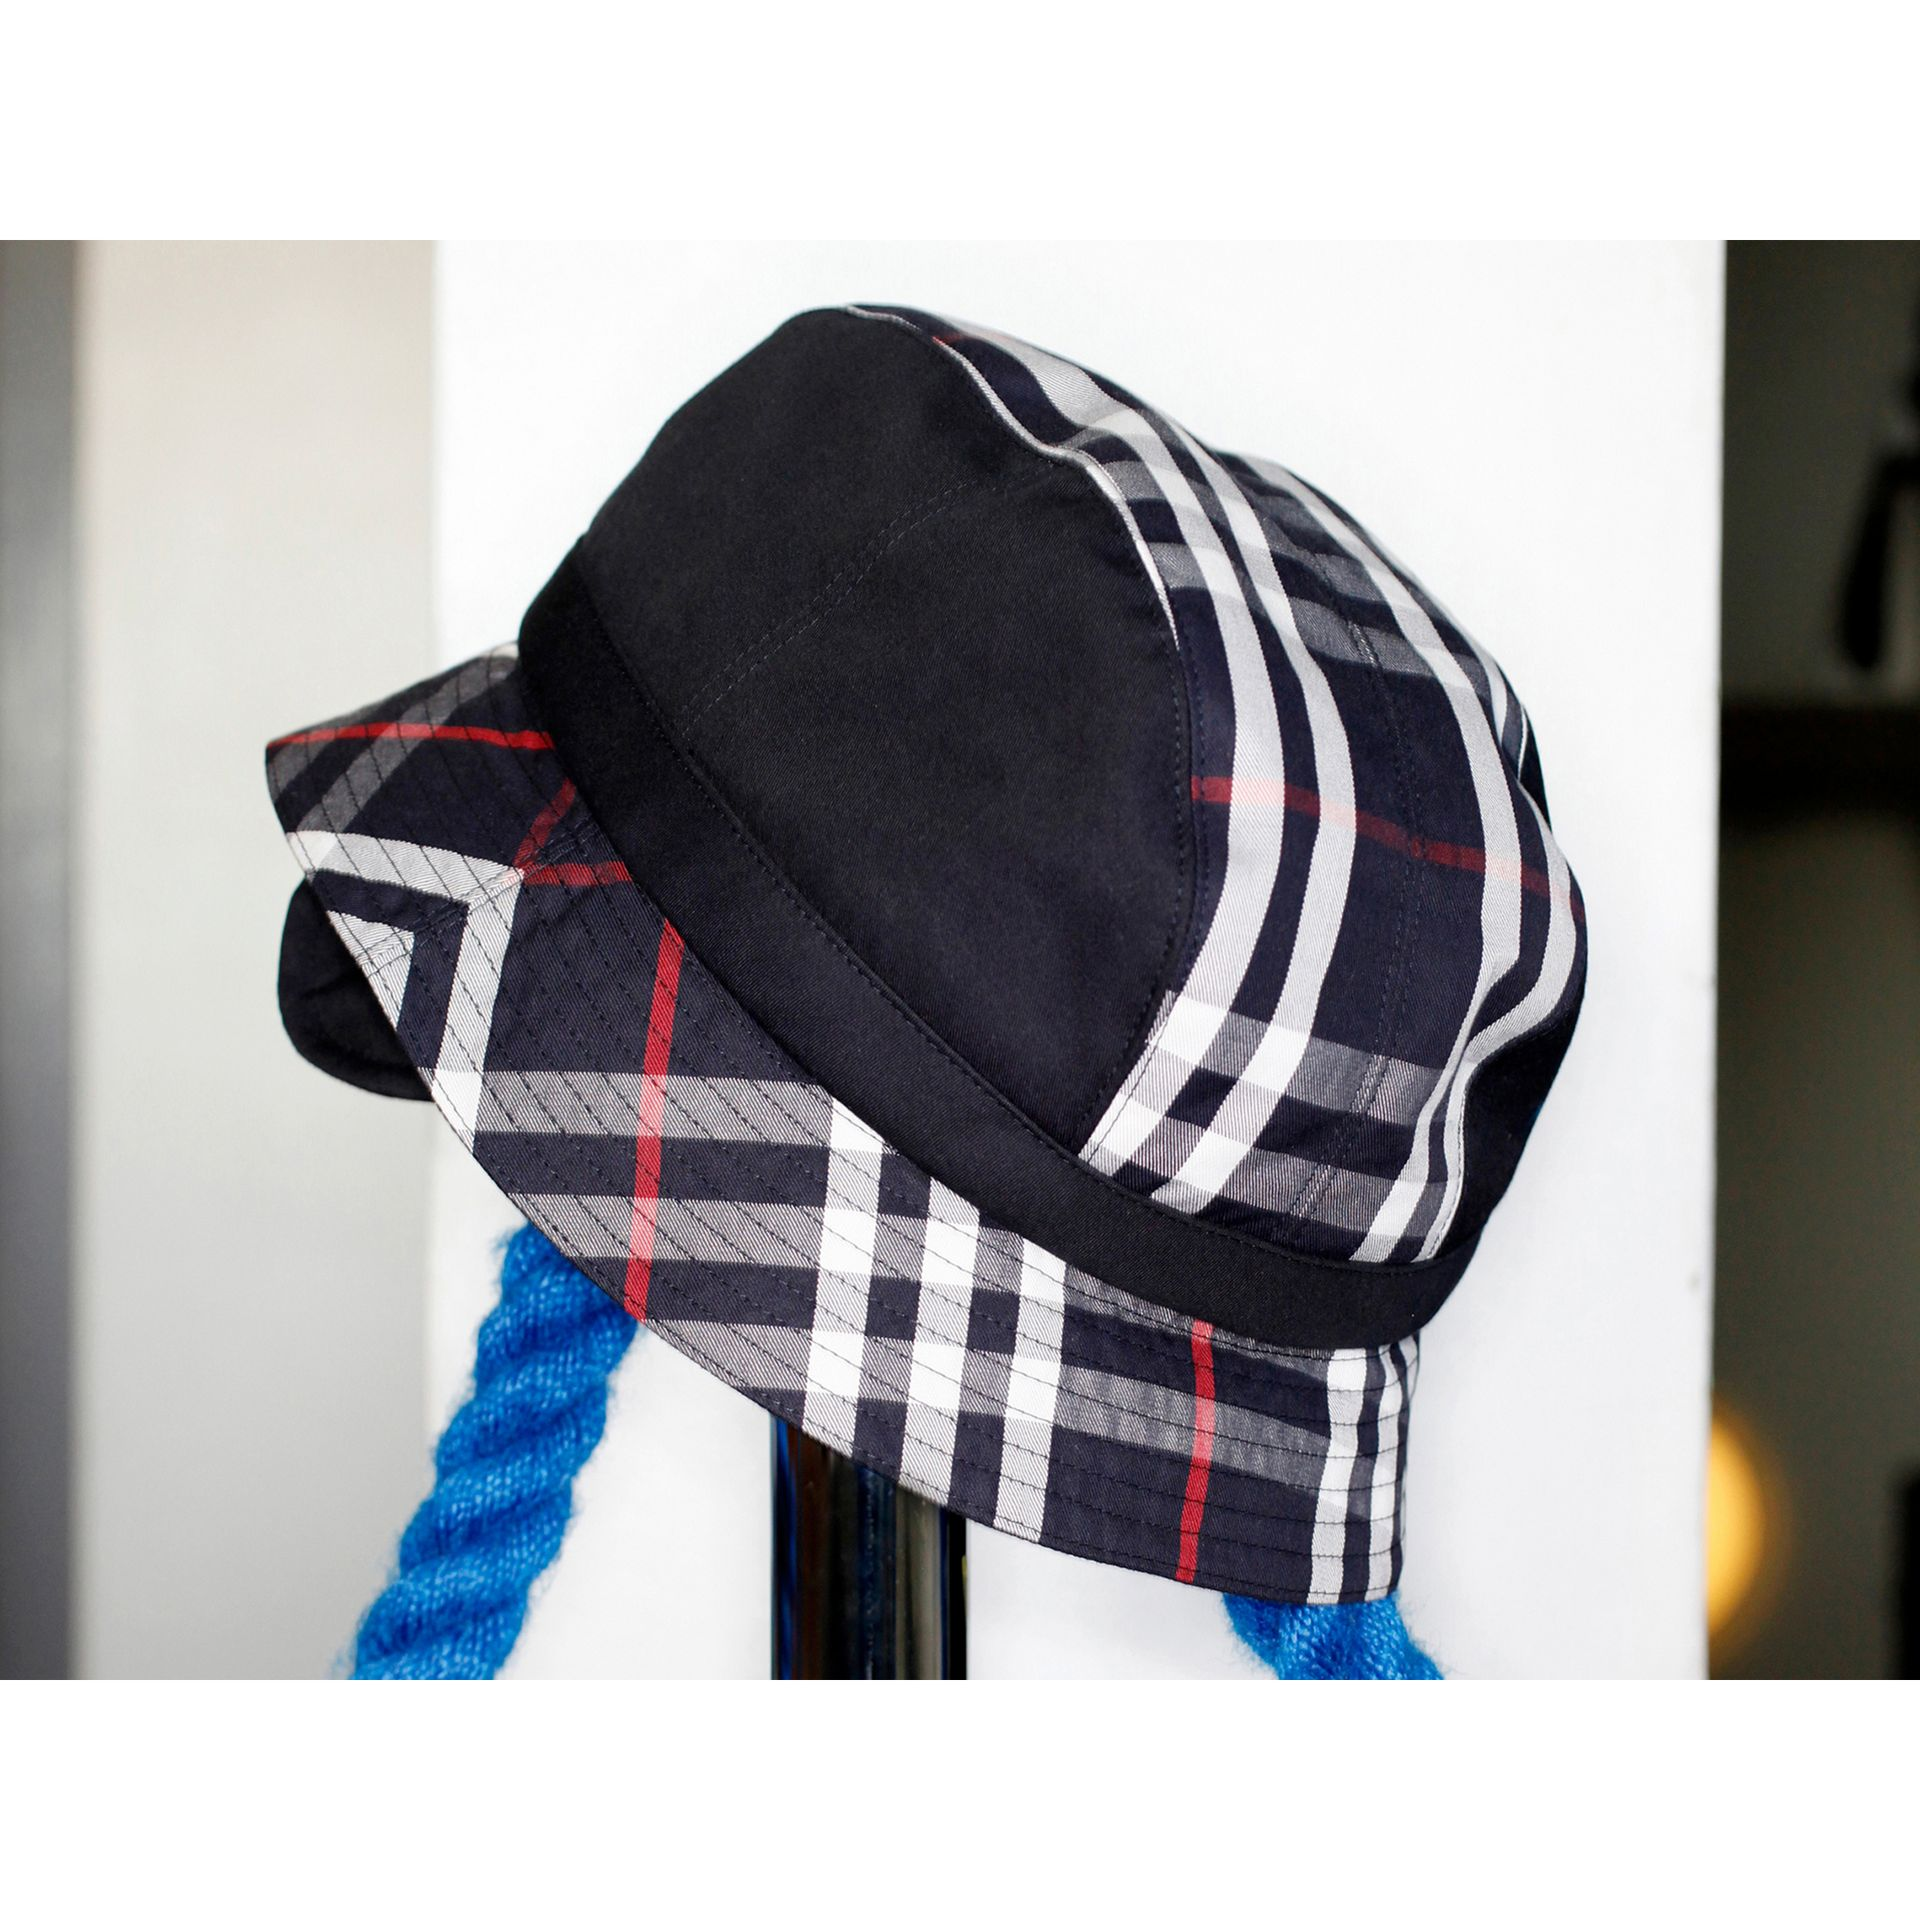 Gosha x Burberry Bucket Hat in Navy | Burberry - gallery image 4